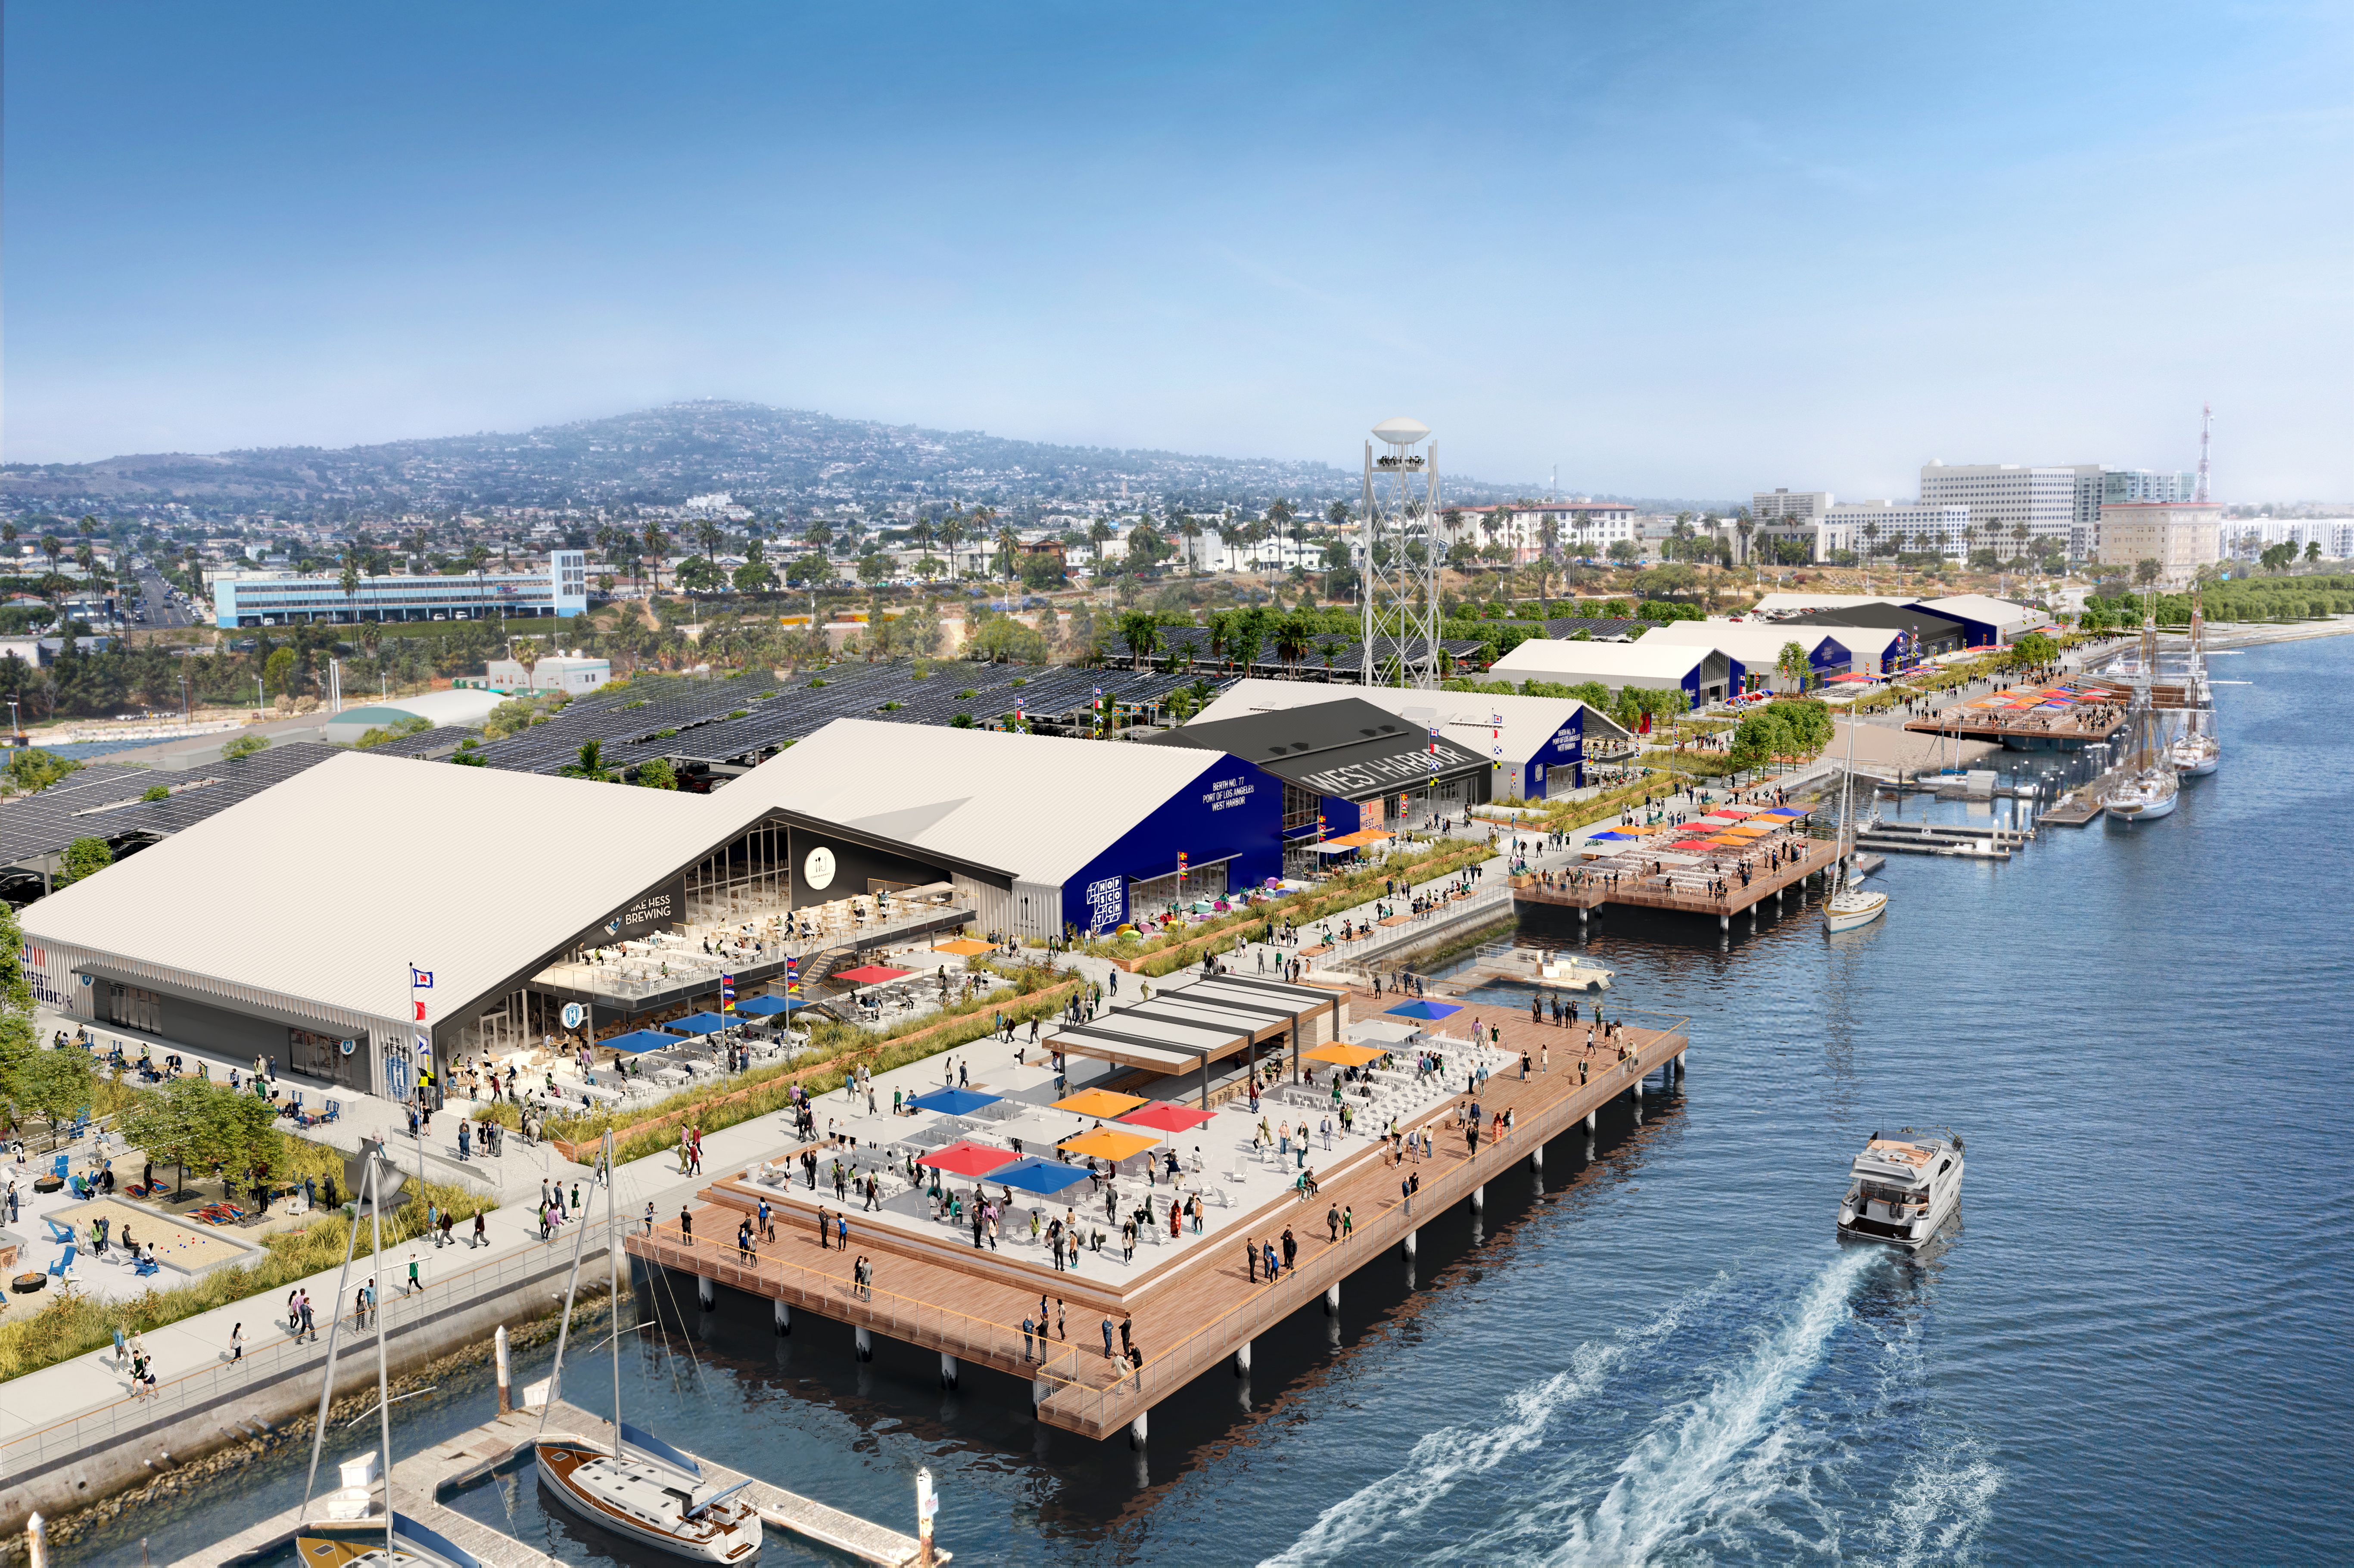 A rendering of a colorful waterside development with boats coming and going and people in the shade.